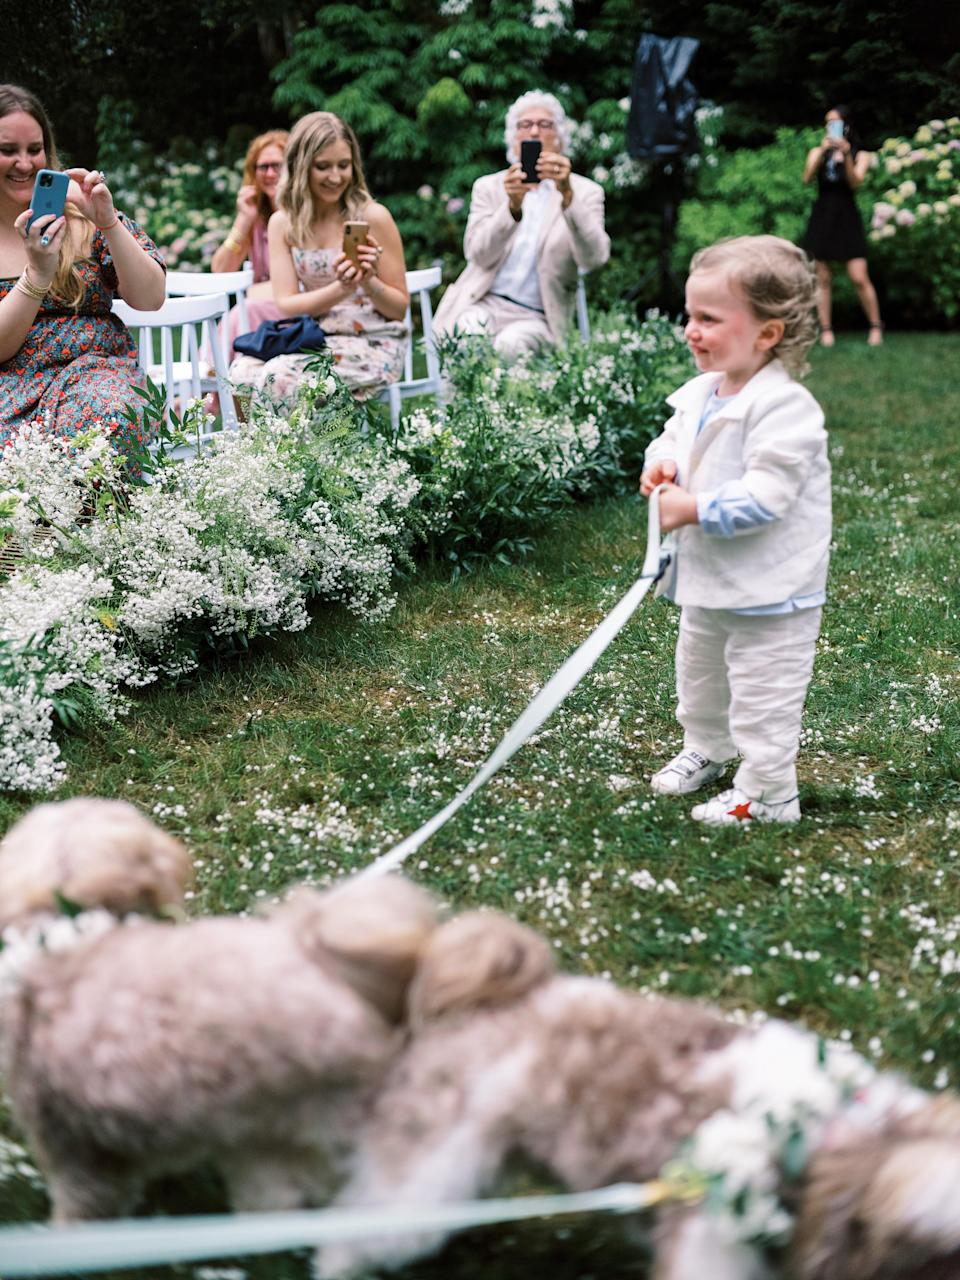 We had our nephews walk our dogs, Honey and Hershey, down the aisle. My sister's son, Bear, wasn't even 2 years old yet. He's such a little rock star! Jung made Honey and Hershey the cutest little floral collars to wear down the aisle.